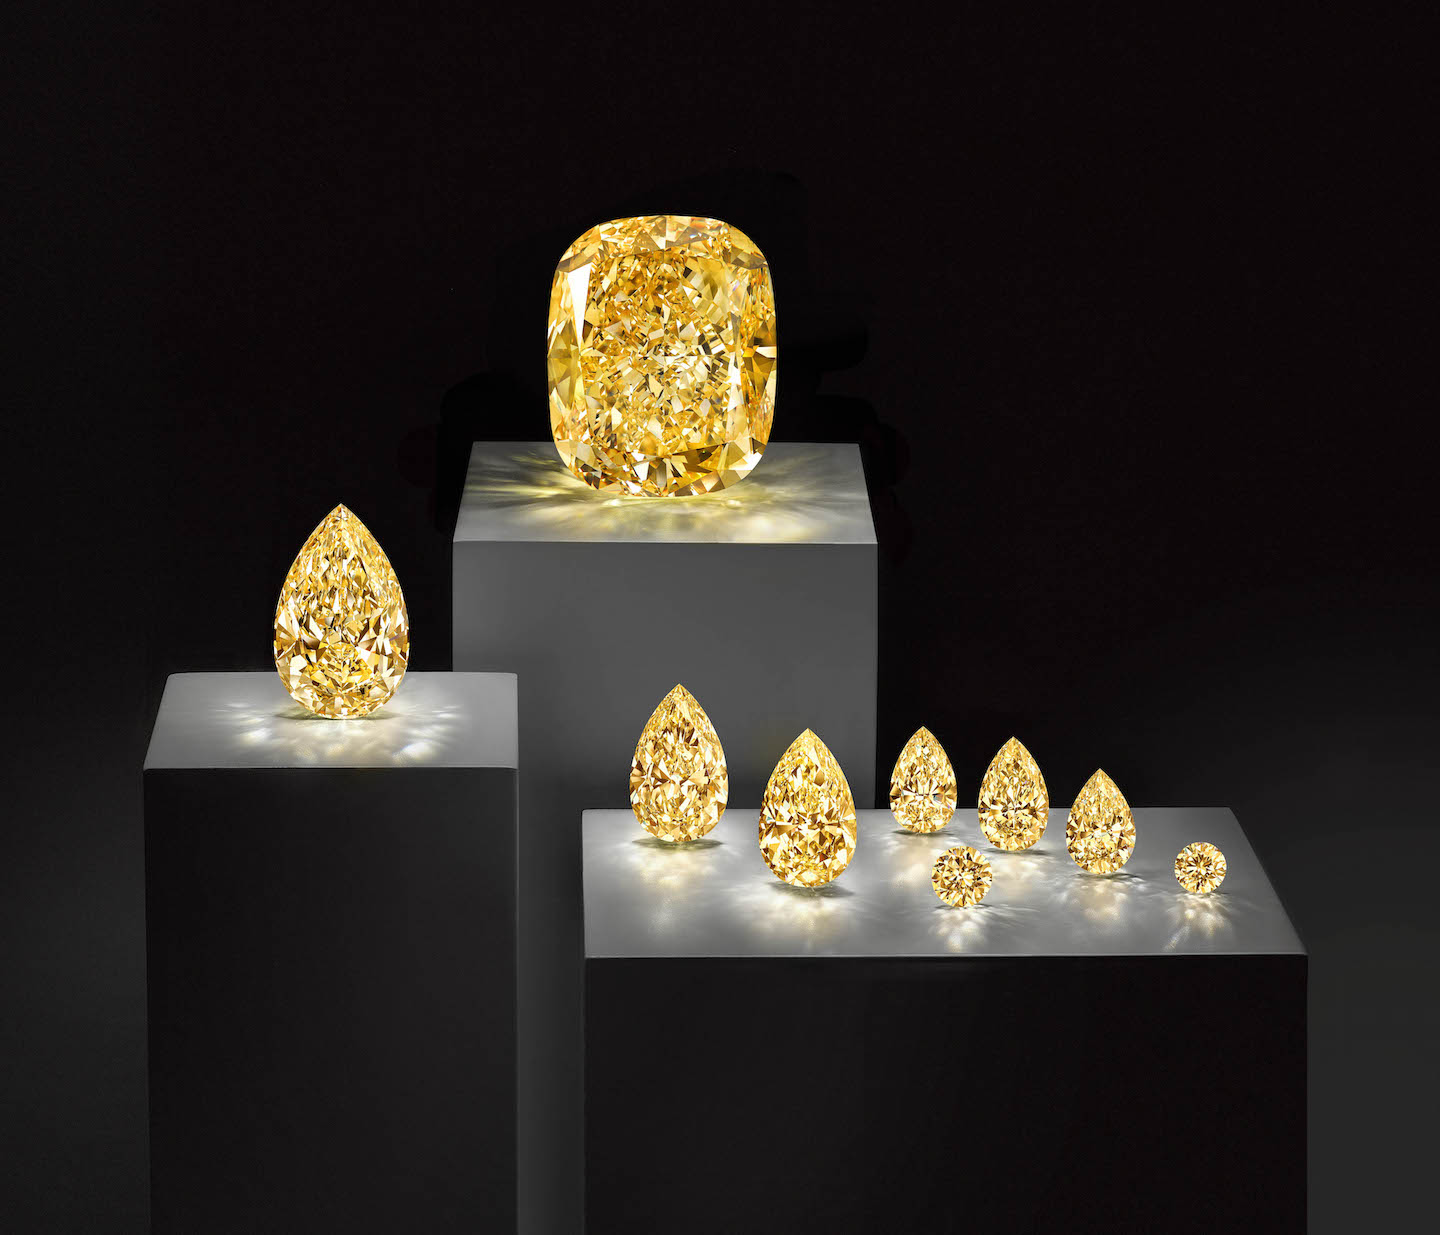 In addition to the Golden  Empress, the rough diamond yielded 8 additional stones.